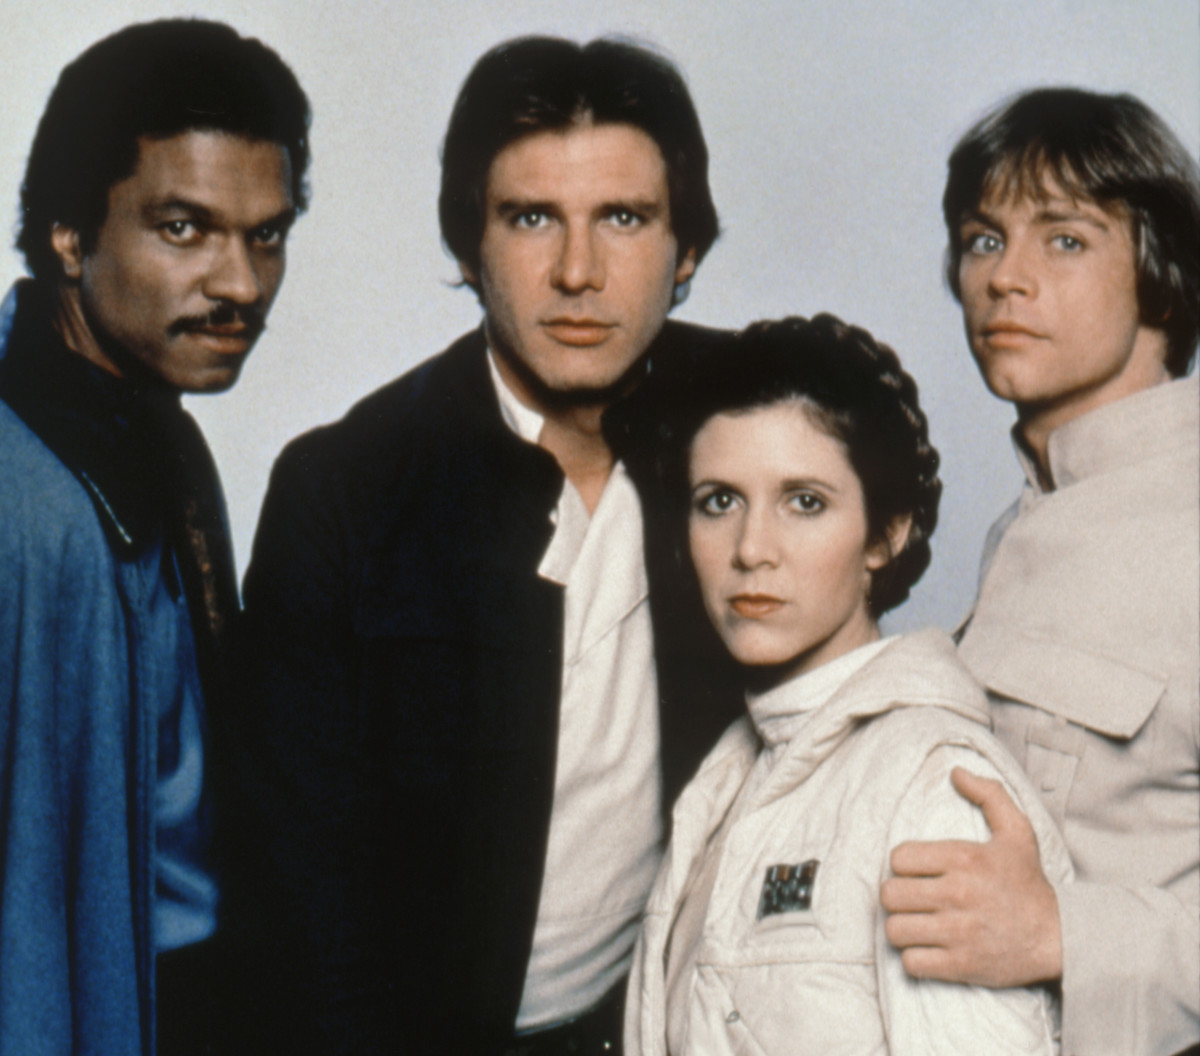 Billy Dee Williams, Harrison Ford, Carrie Fisher and Mark Hamill on the set of Star Wars Episode V - The Empire Strikes Back